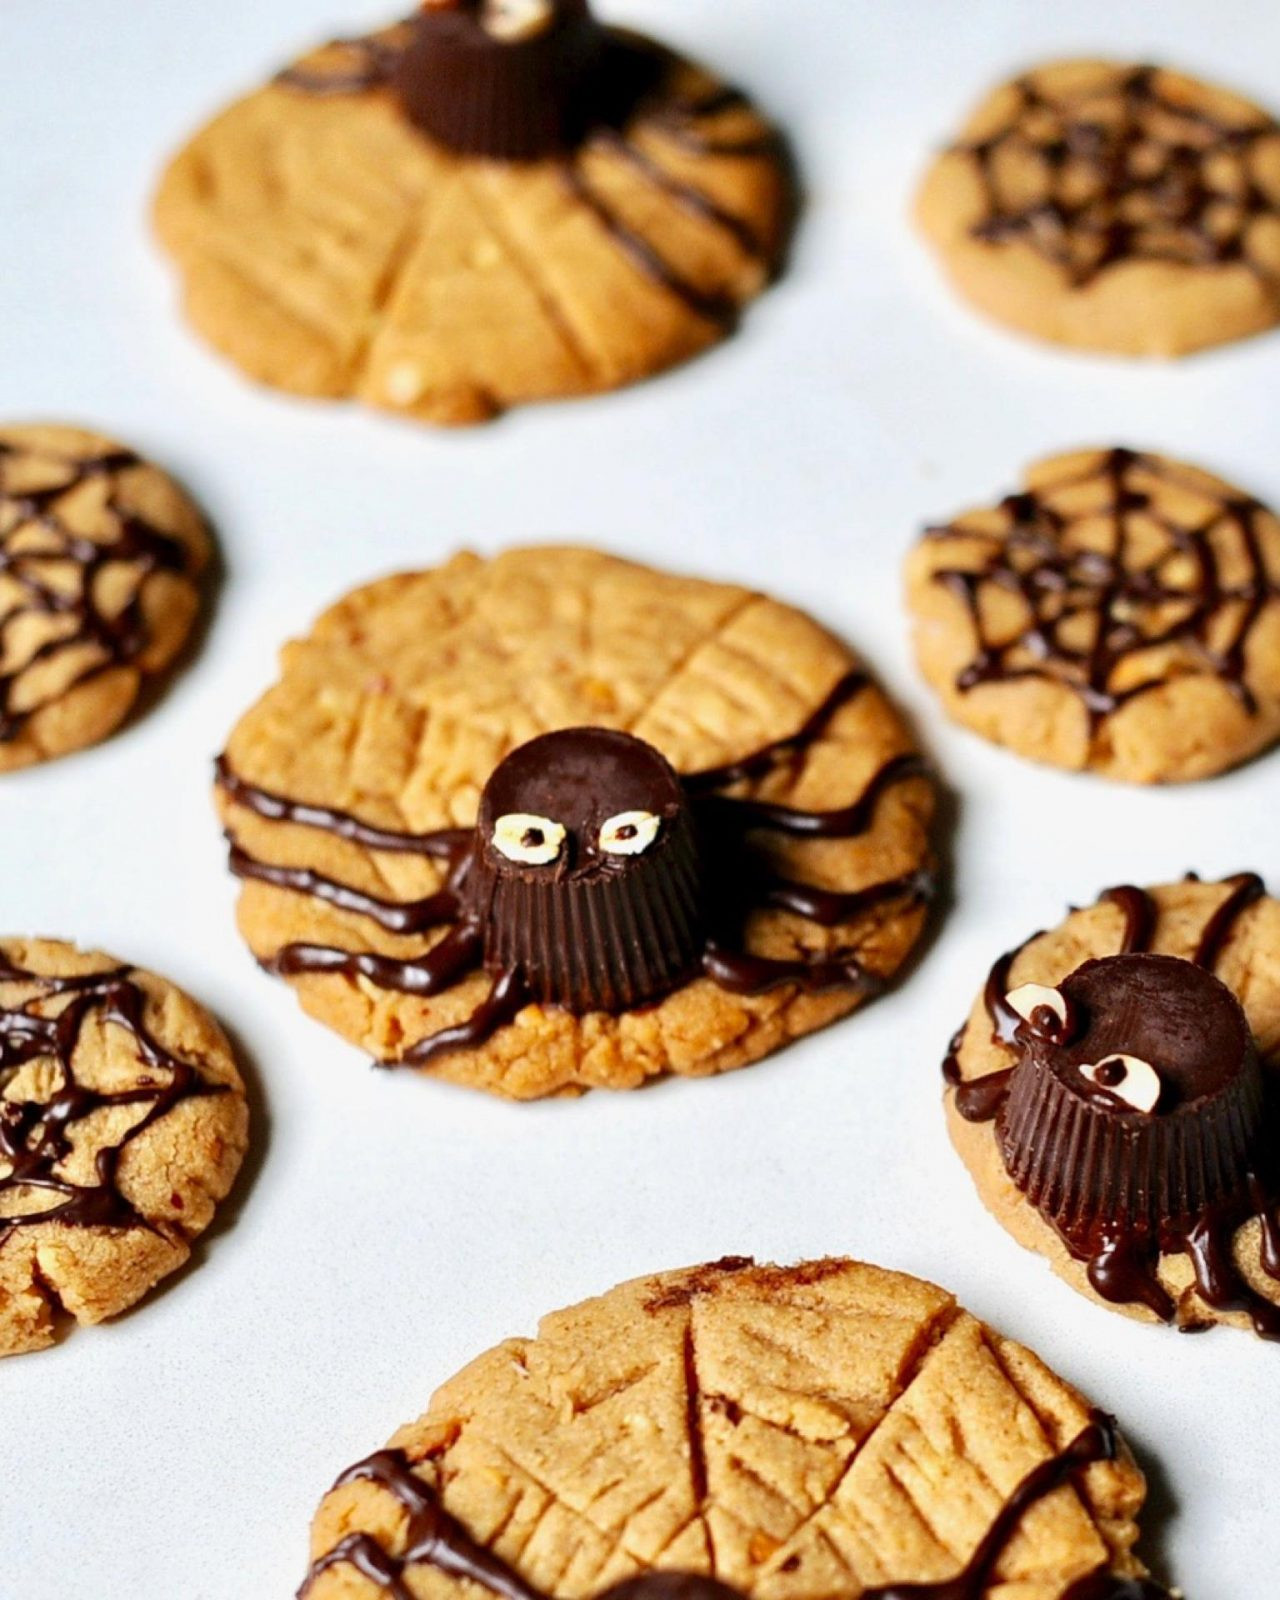 Vegan Halloween Cookies  Peanut Butter Spider Cookies for Halloween Vegan Gluten